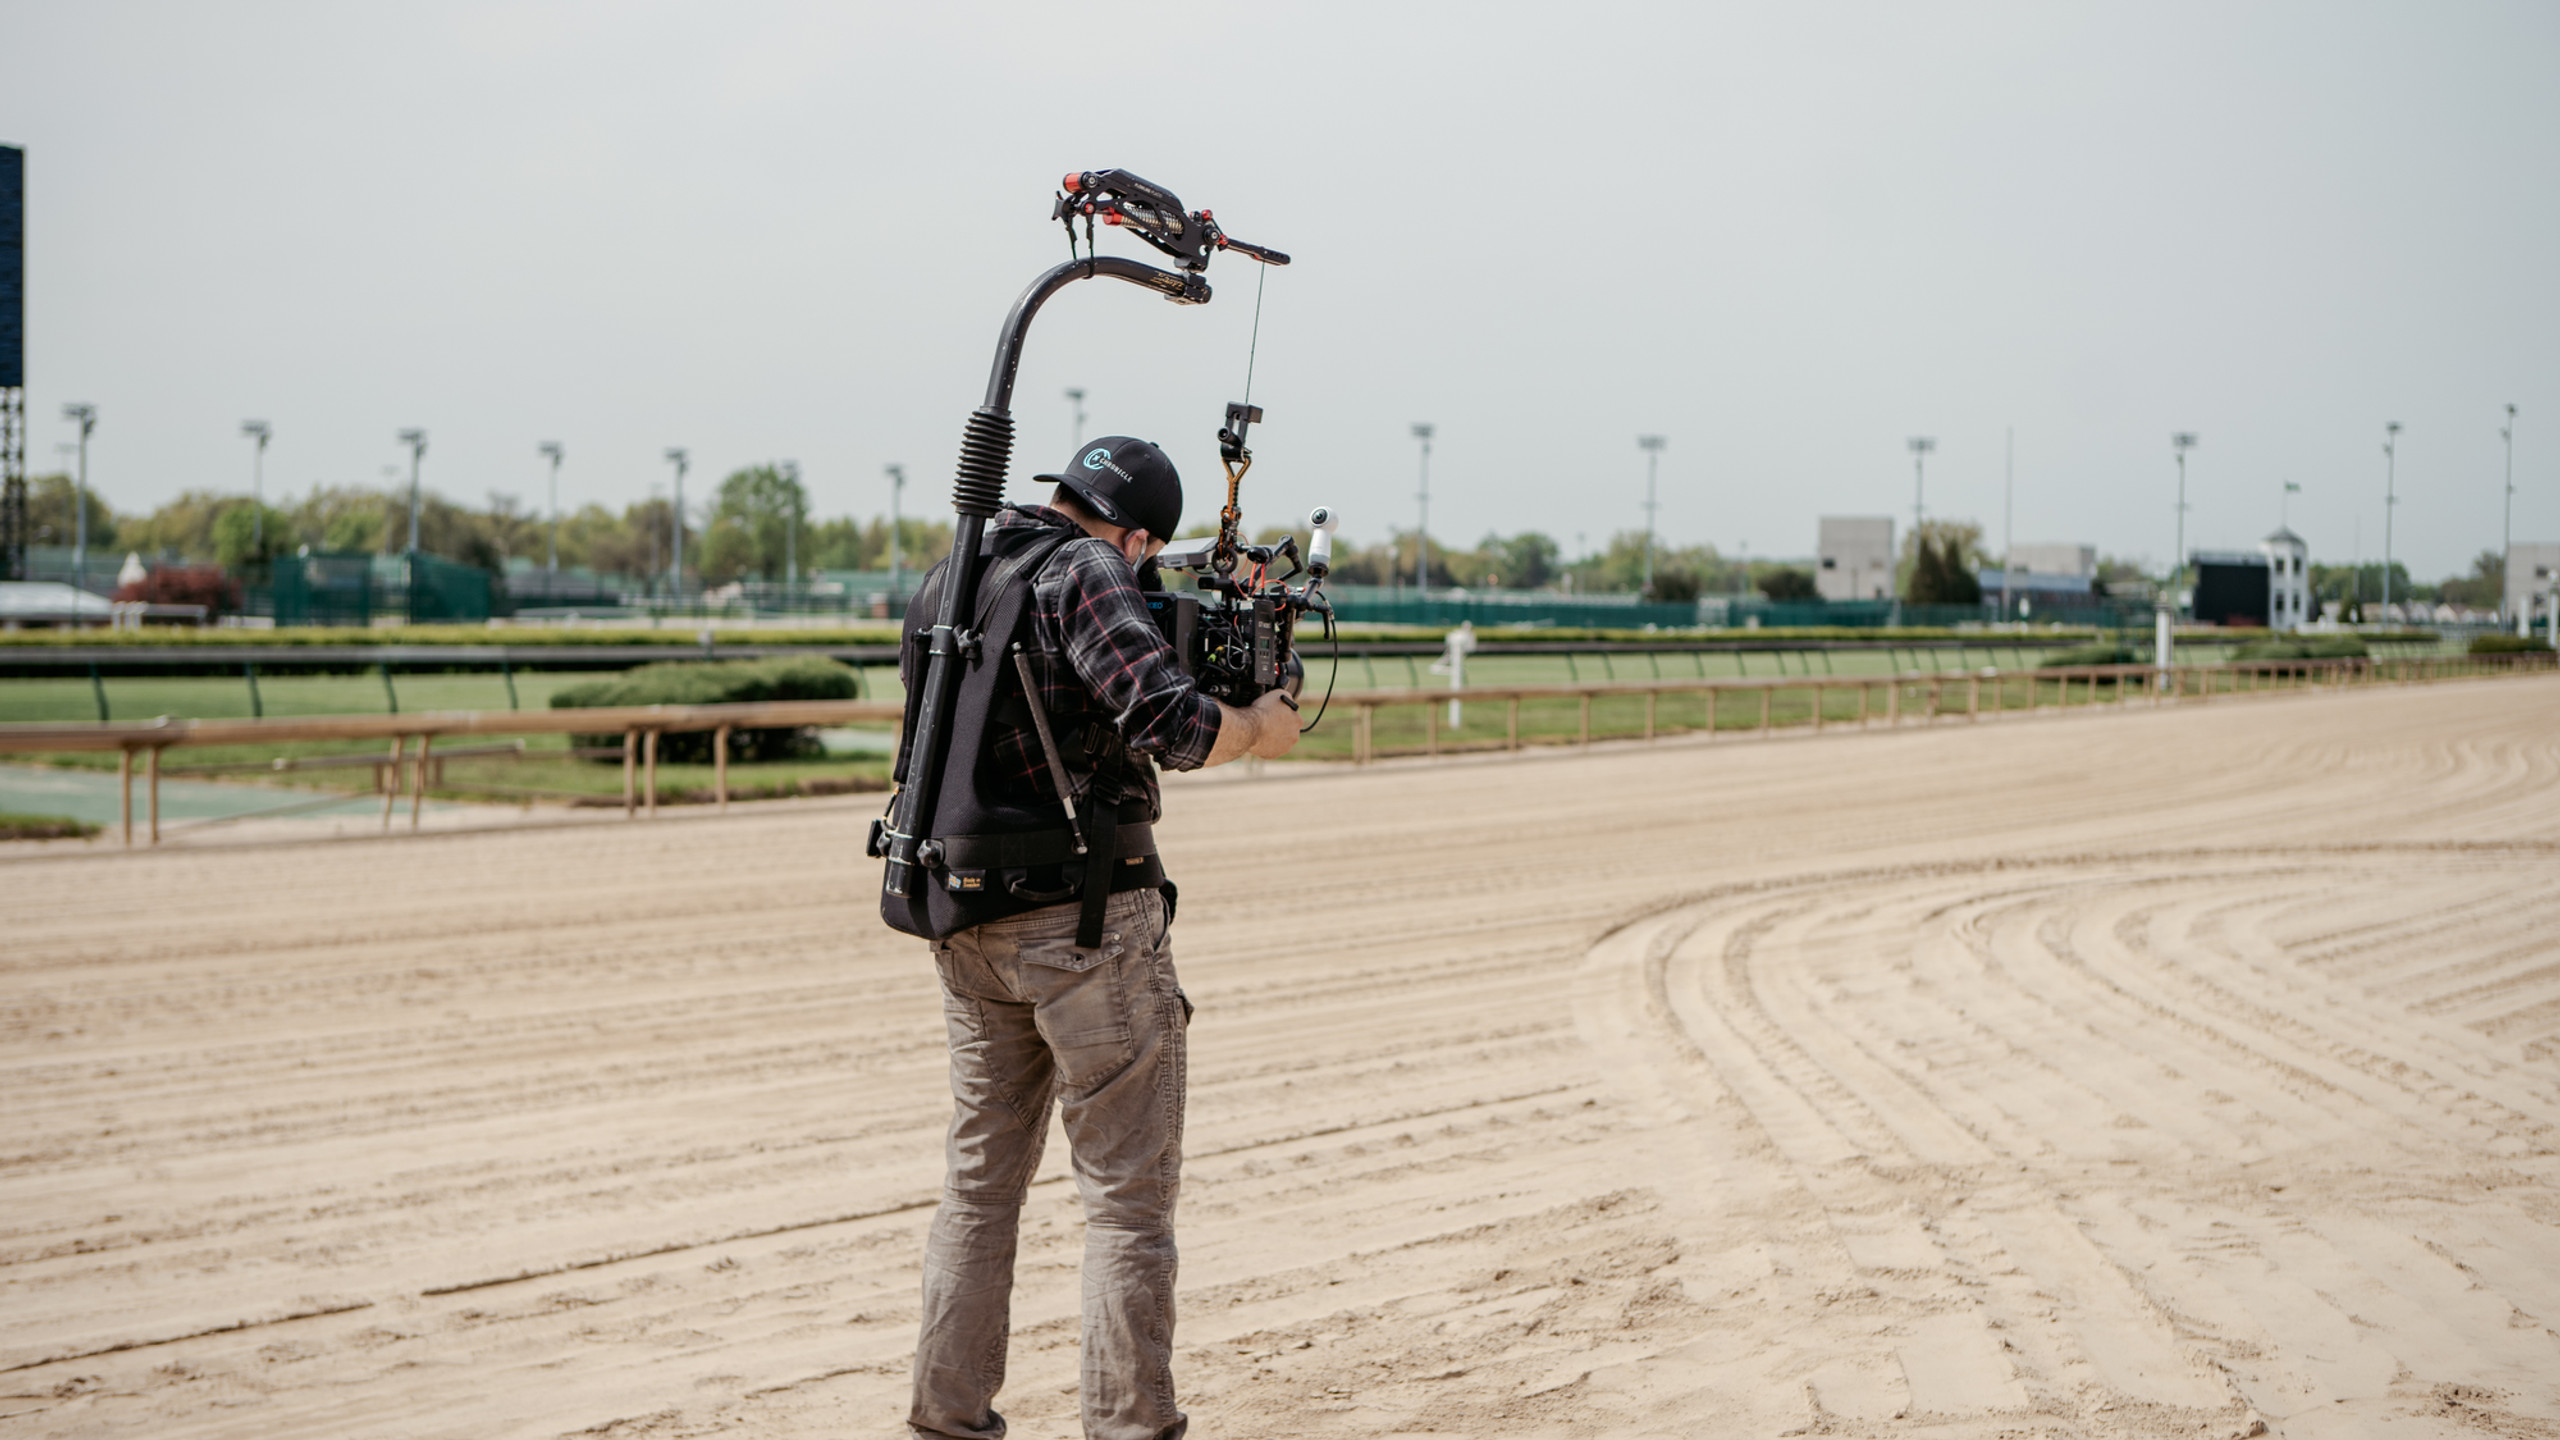 Filming on the track